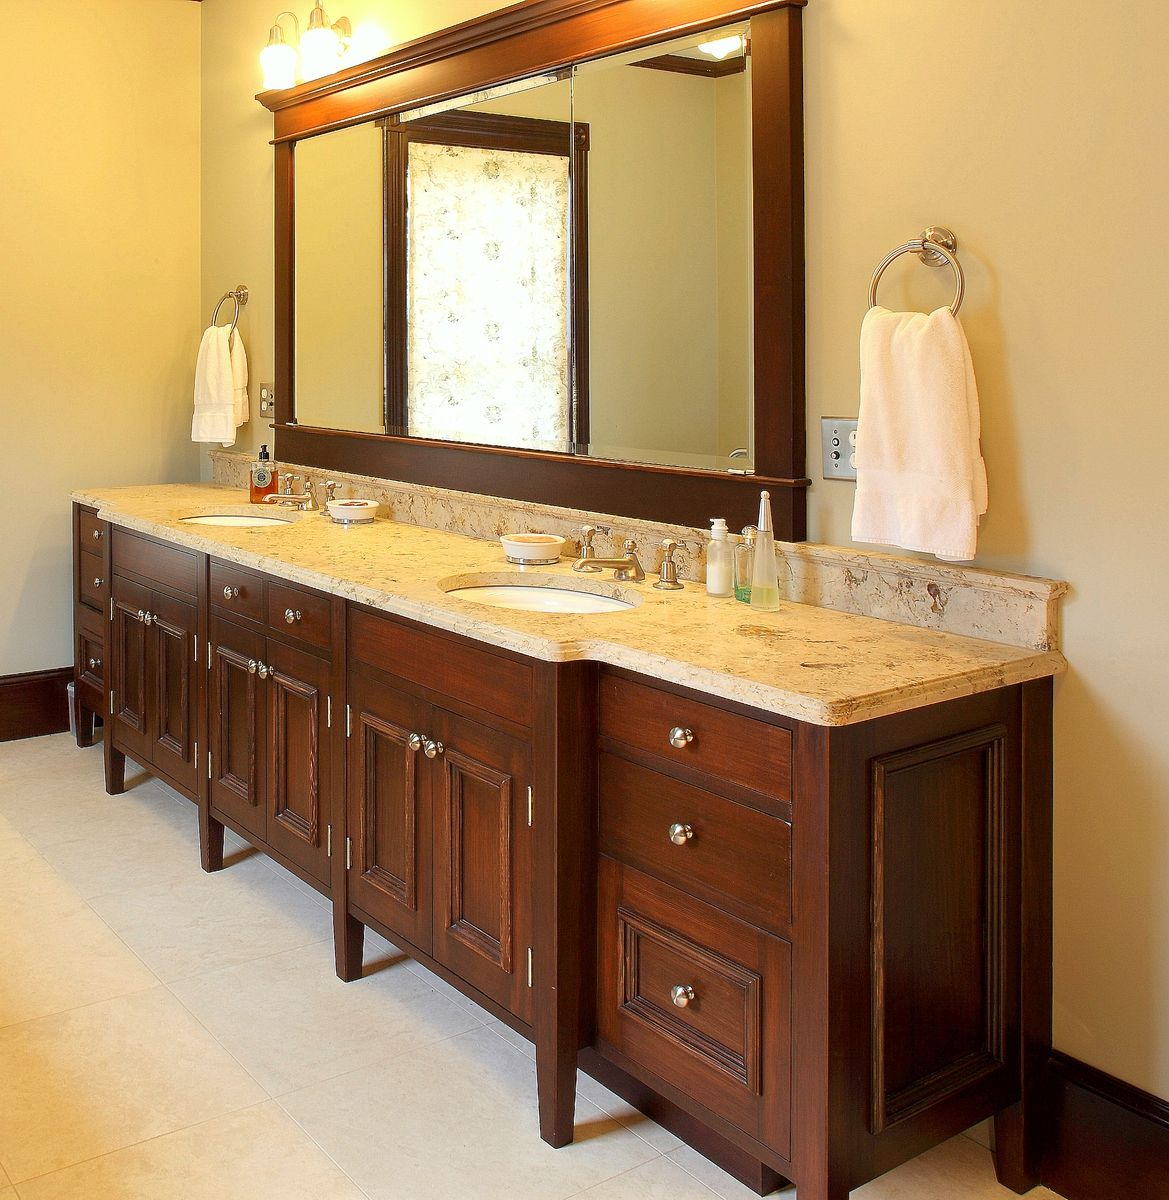 Hand Made Double Sink Bath Vanity By Benchmark Woodworks - Custom made bathroom vanity units for bathroom decor ideas